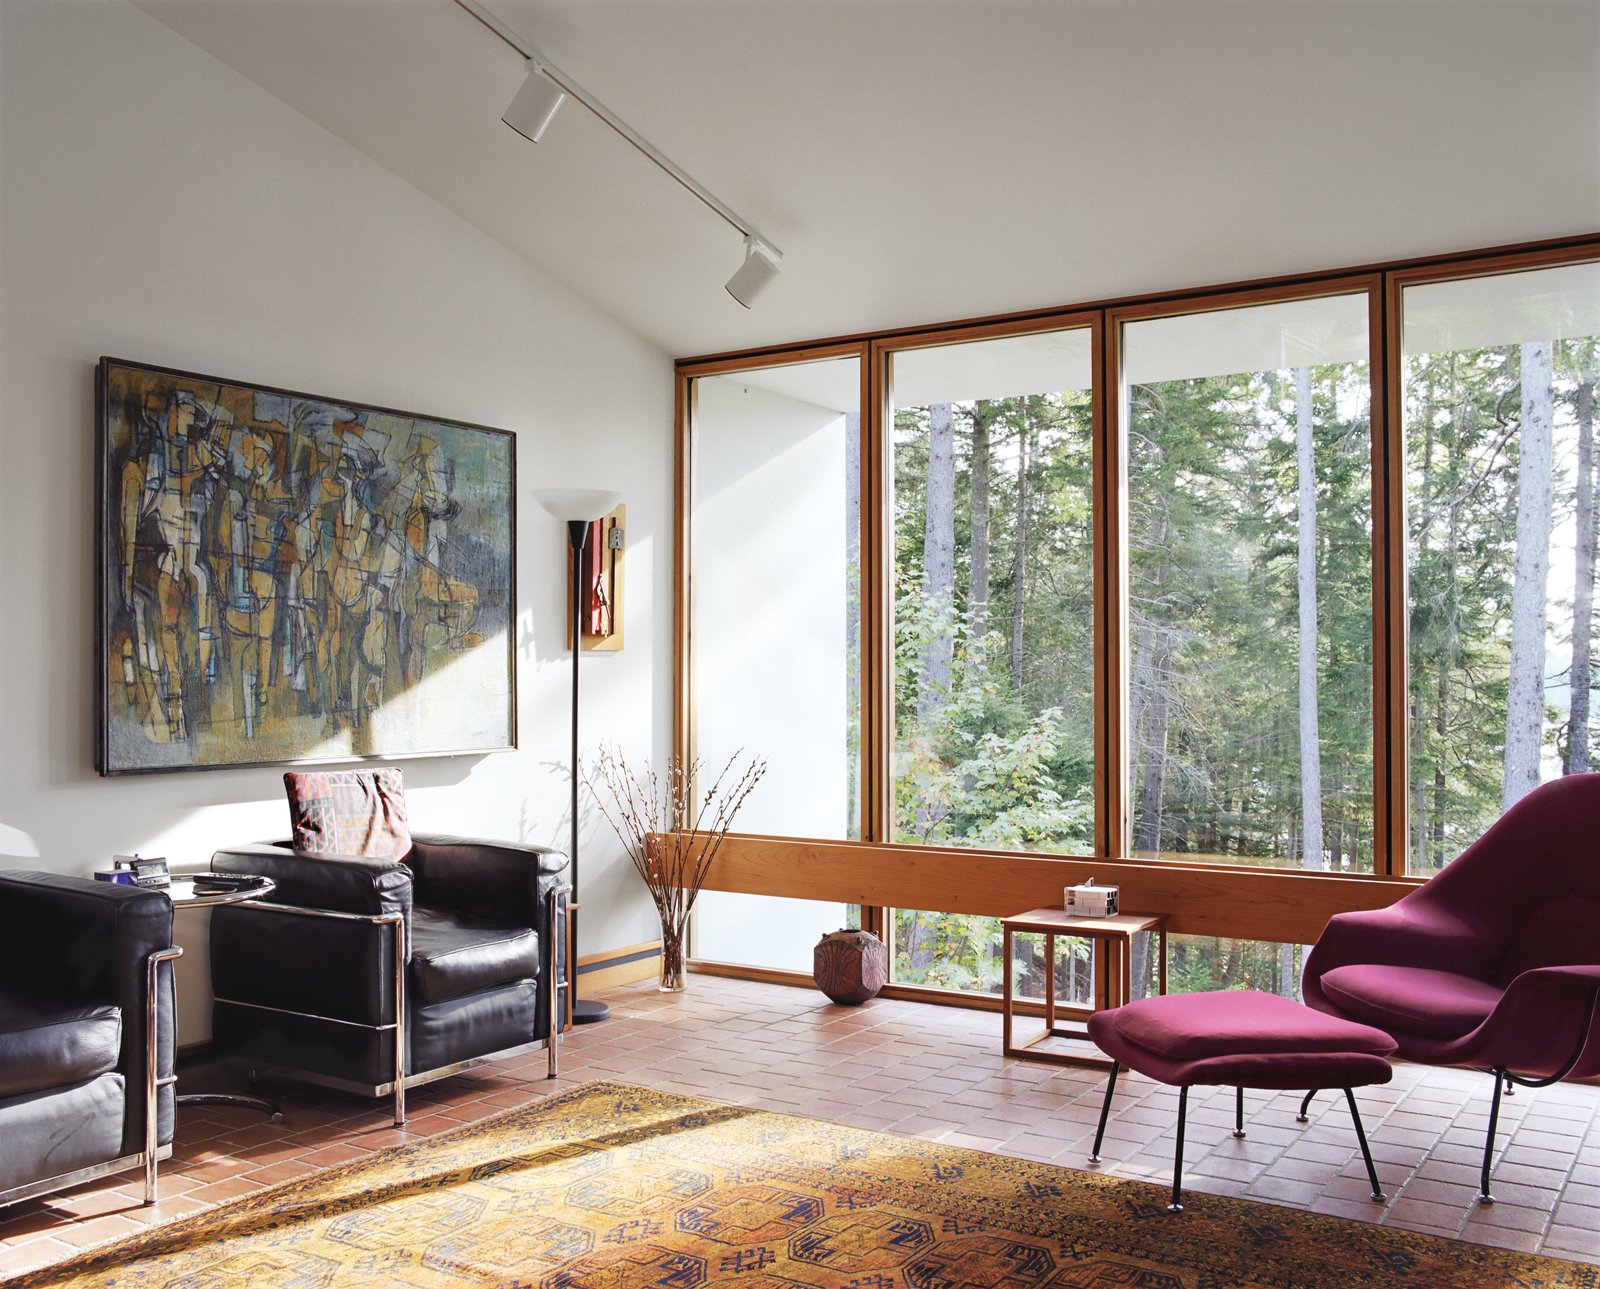 A pair of LC2 chairs by Le Corbusier are ideal spots for watching the river down below. The Womb chair by Eero Saarinen is a close second.  Photo 7 of 15 in The Right Track